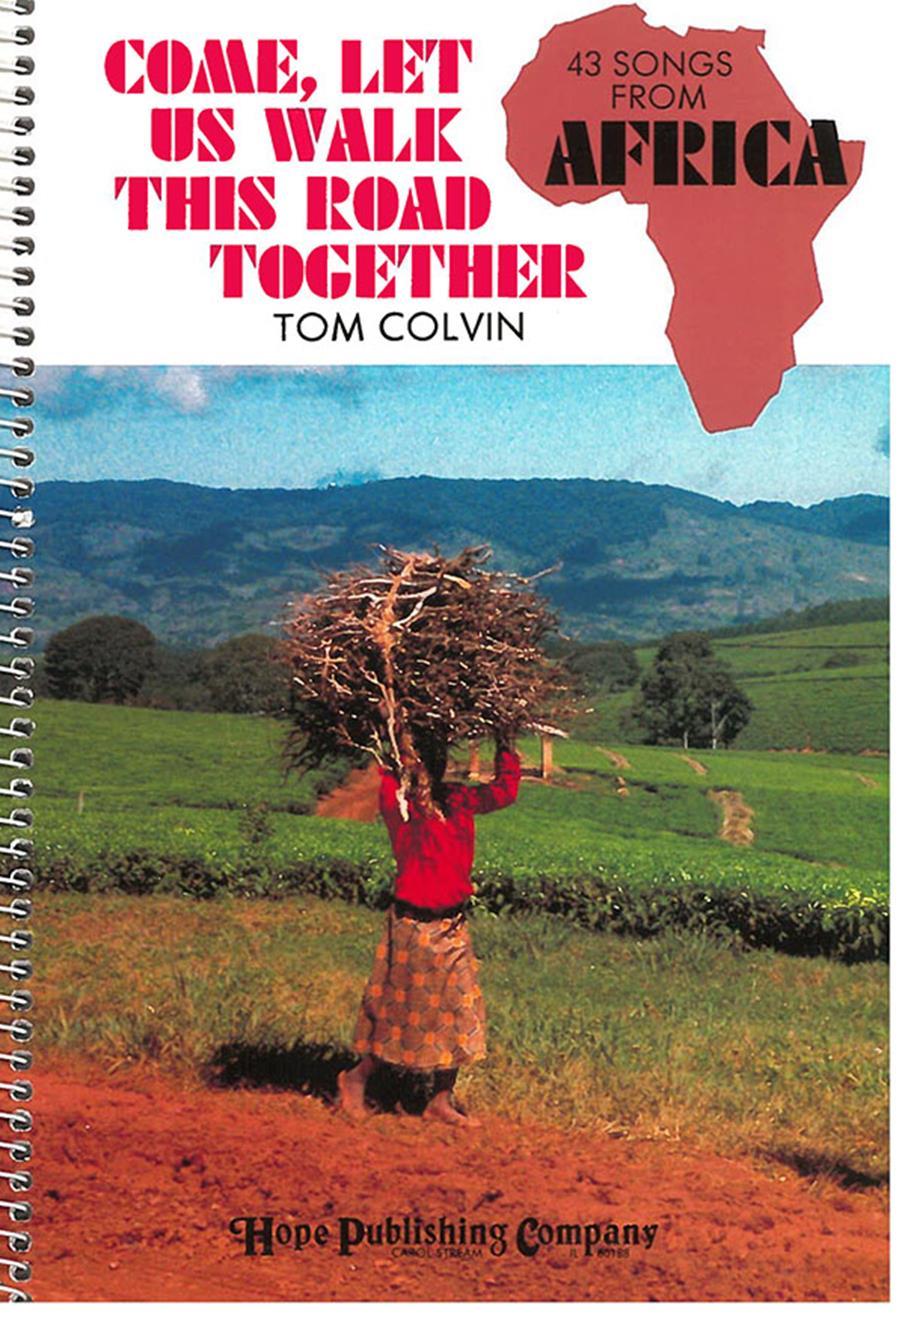 Come Let Us Walk this Road Together - Tom Colvin Hymn Collection Cover Image